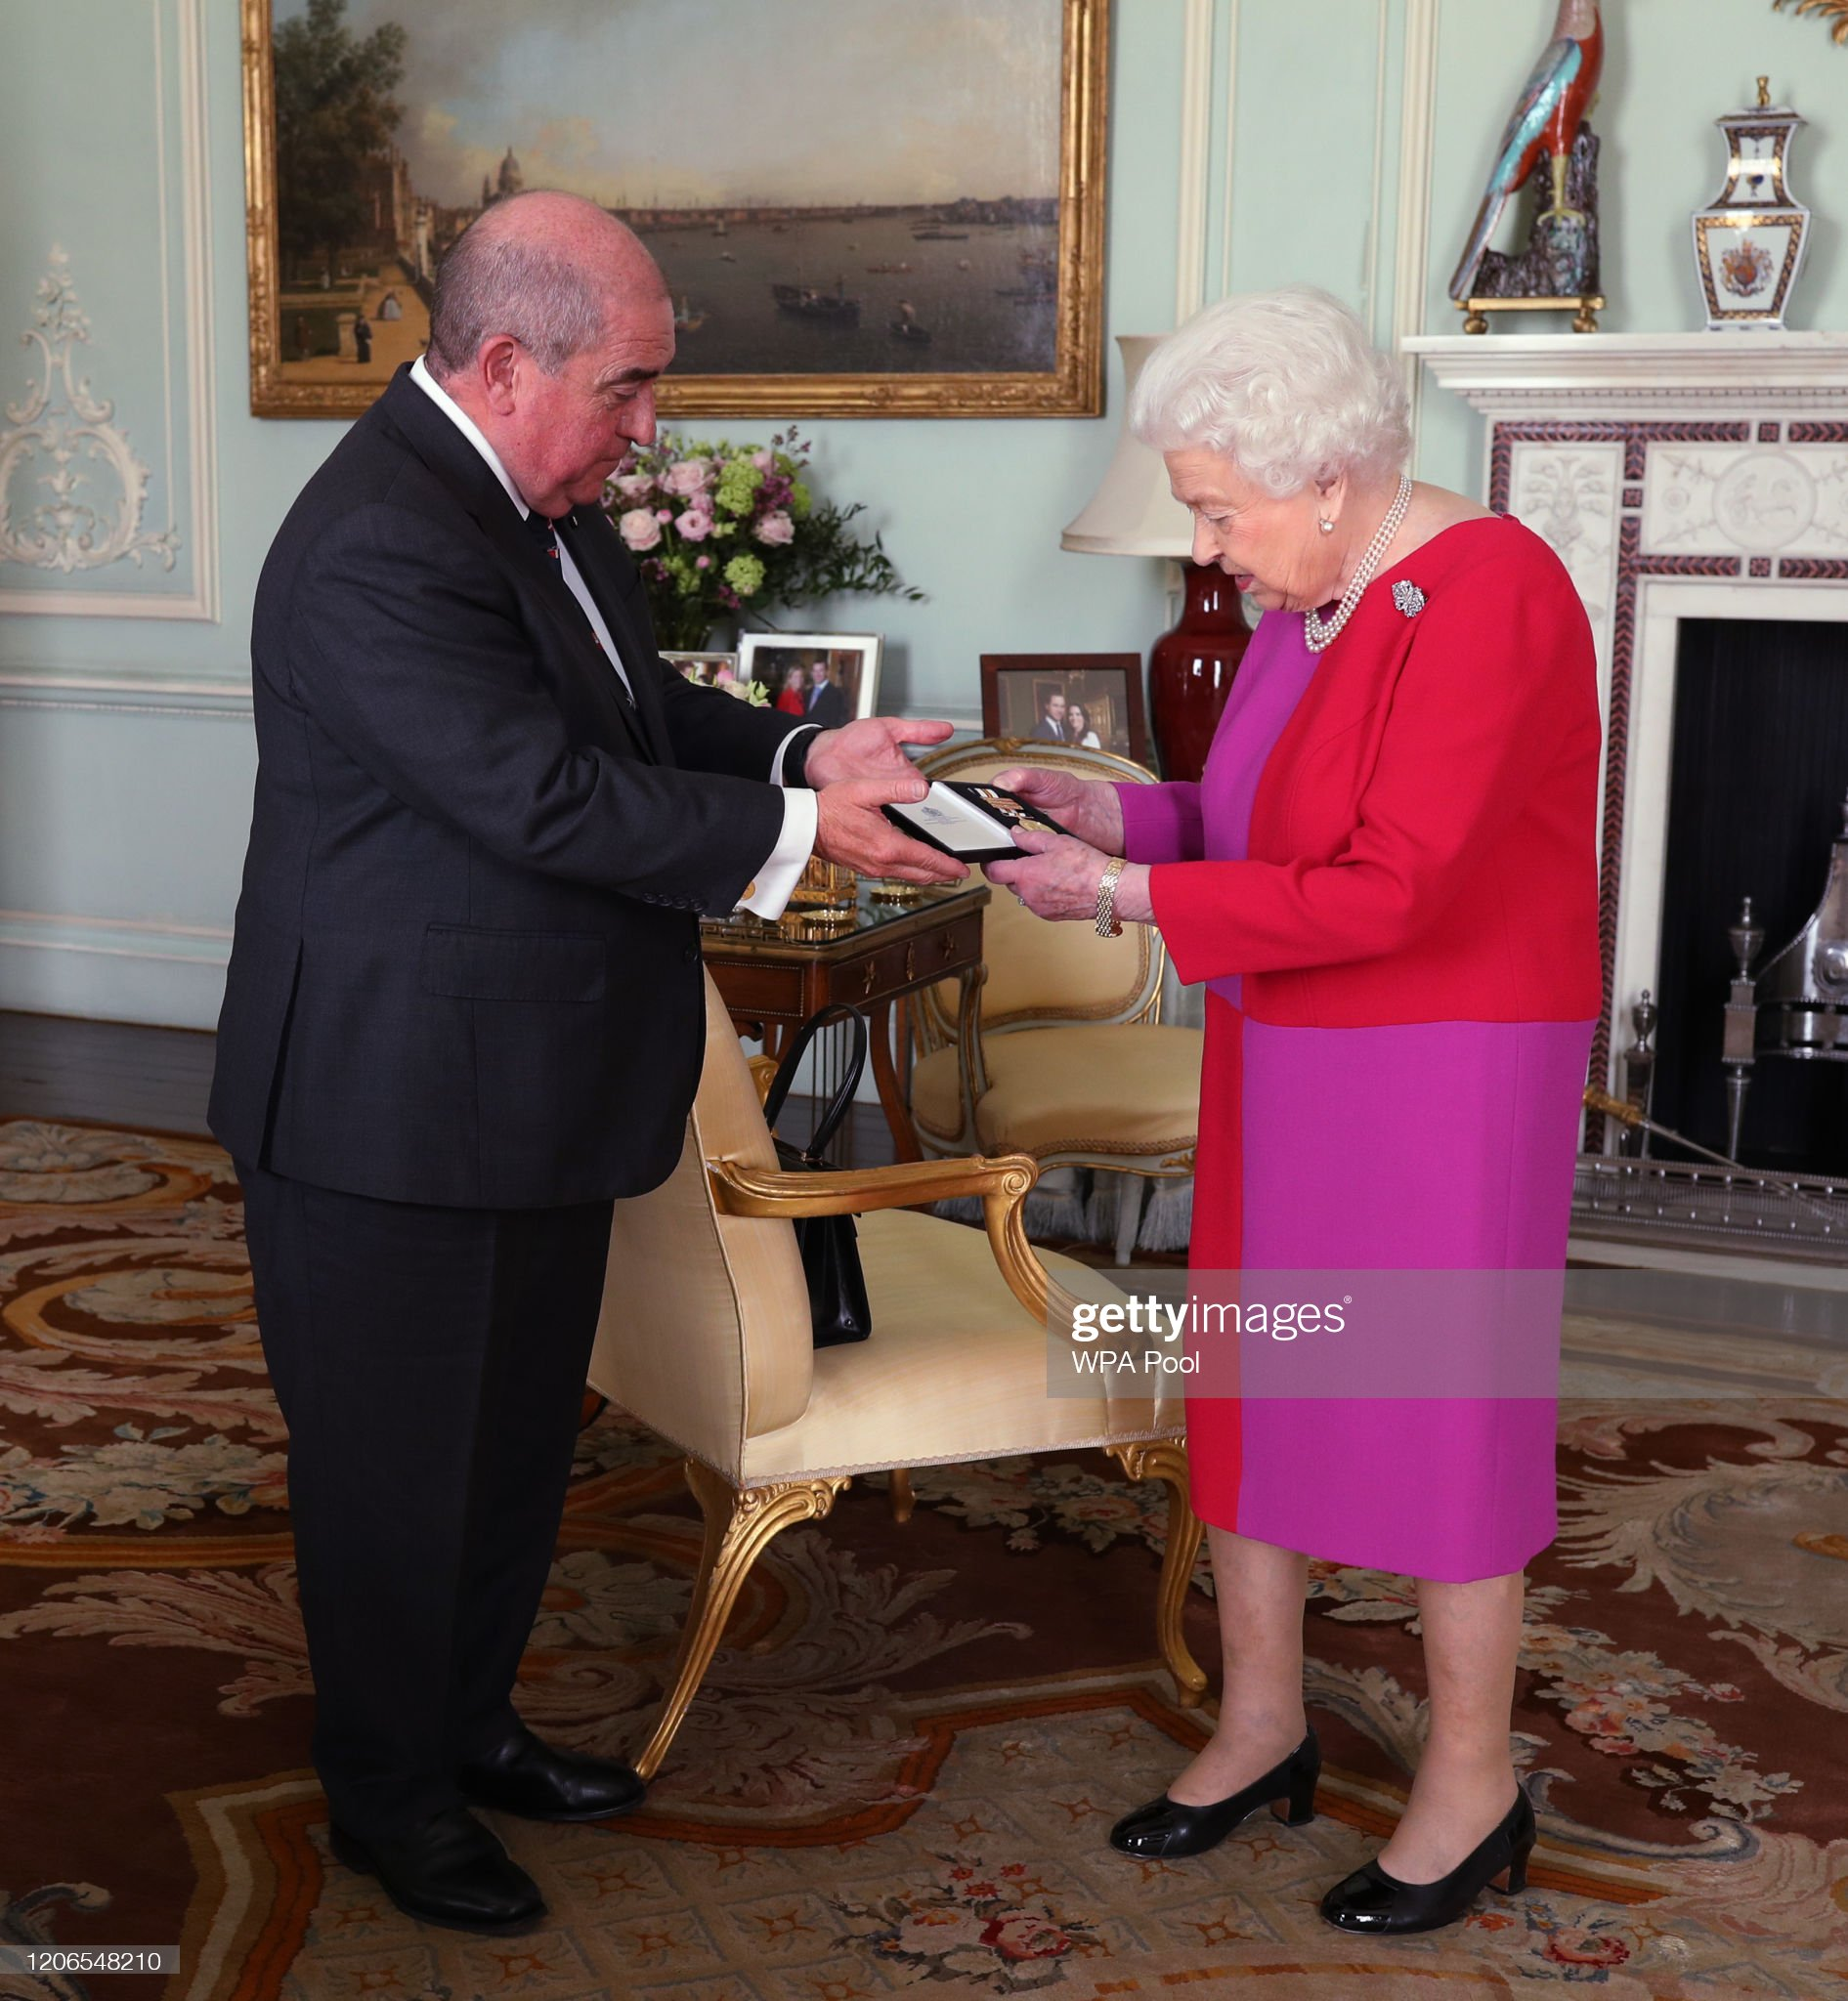 https://media.gettyimages.com/photos/queen-elizabeth-ii-receives-professor-mark-compton-lord-prior-of-the-picture-id1206548210?s=2048x2048